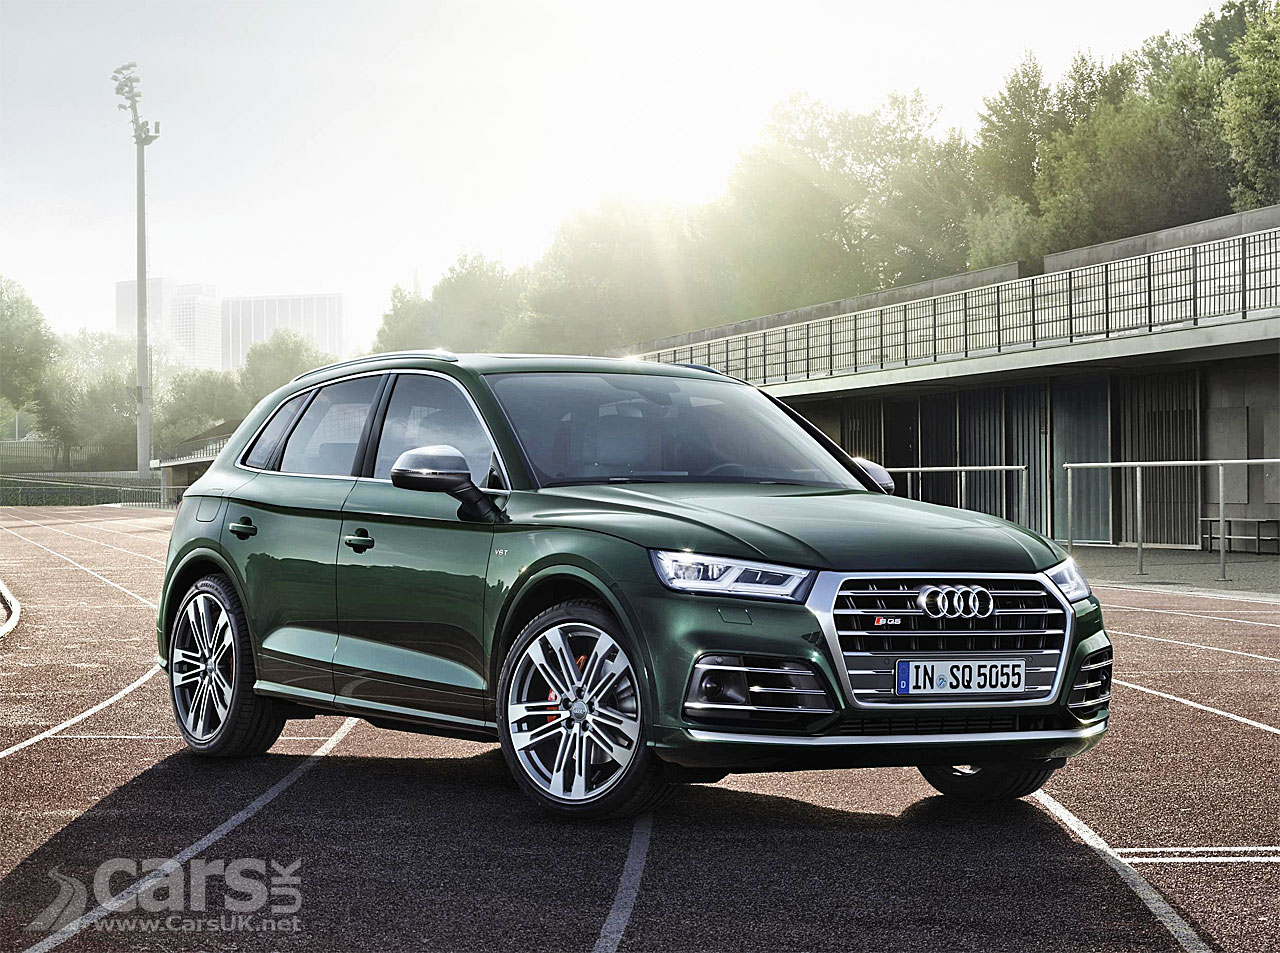 2017 audi sq5 goes on sale in audi 39 s uk dealers price. Black Bedroom Furniture Sets. Home Design Ideas